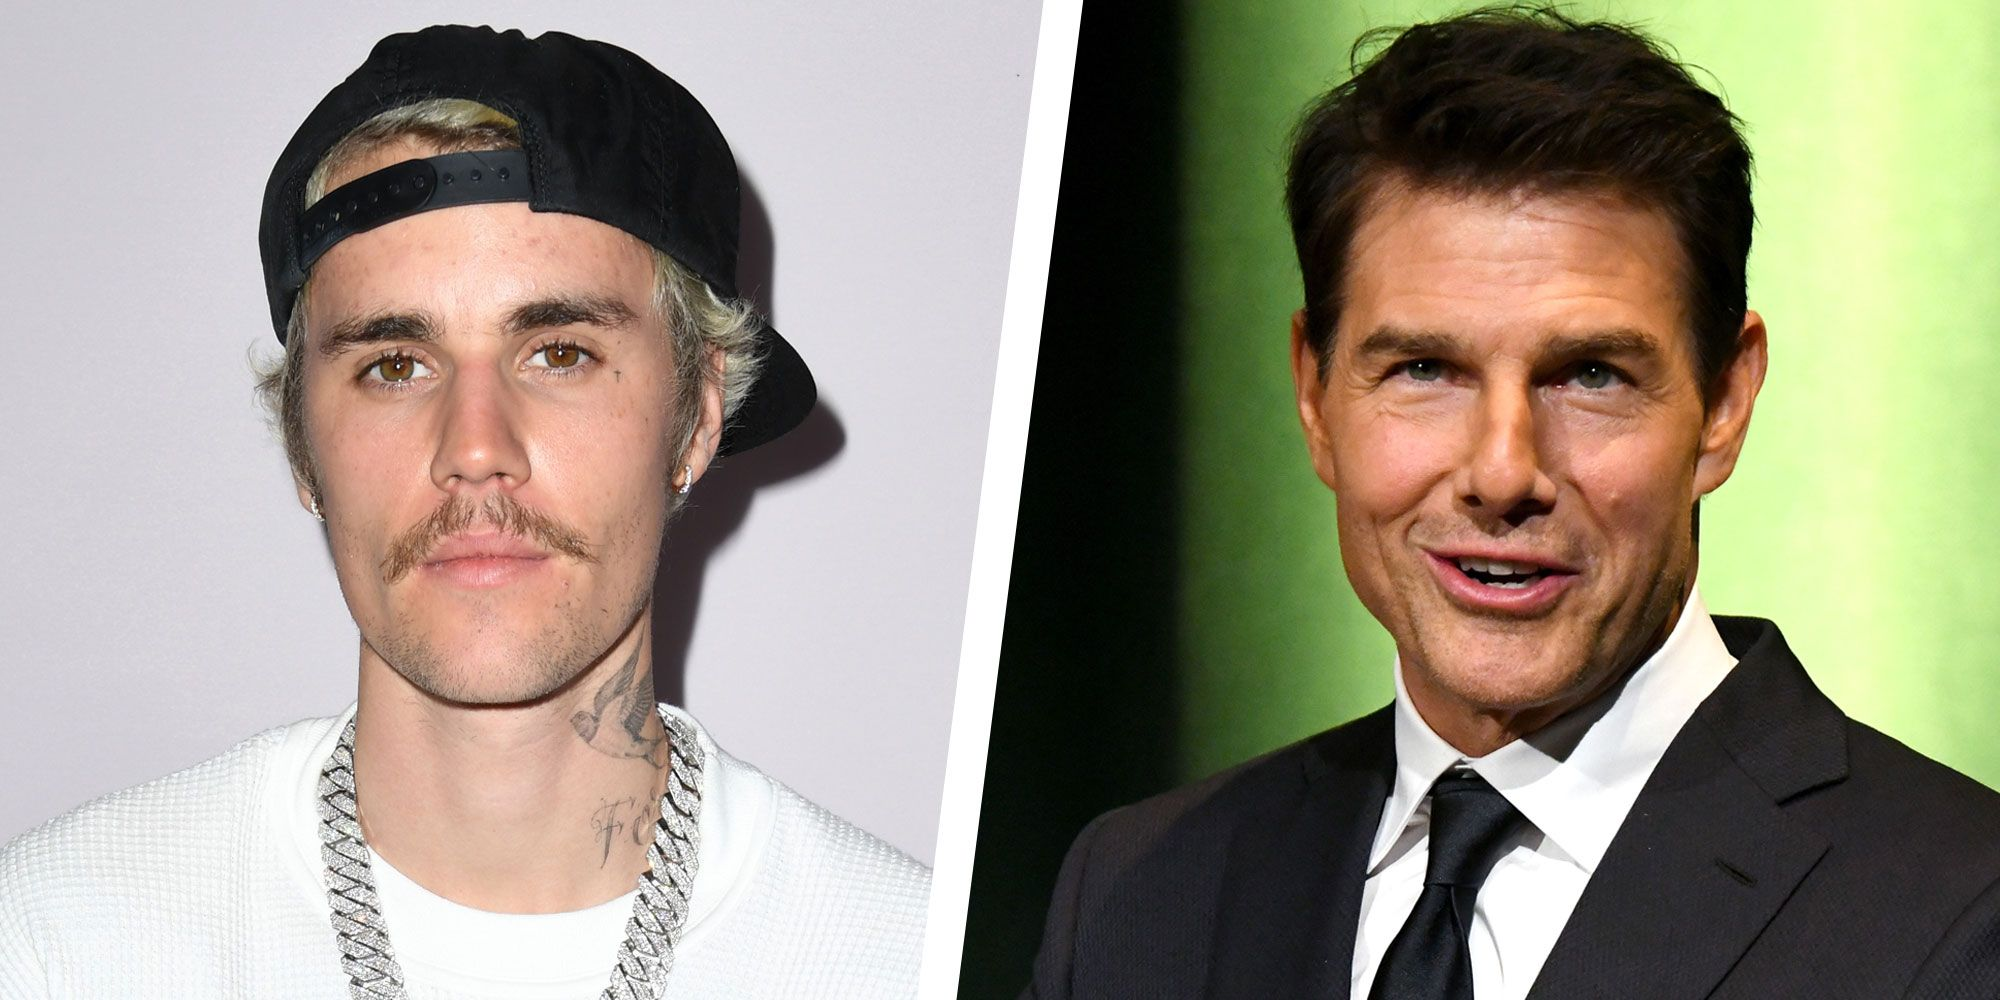 Justin Bieber Is Still Talking About Fighting Tom Cruise